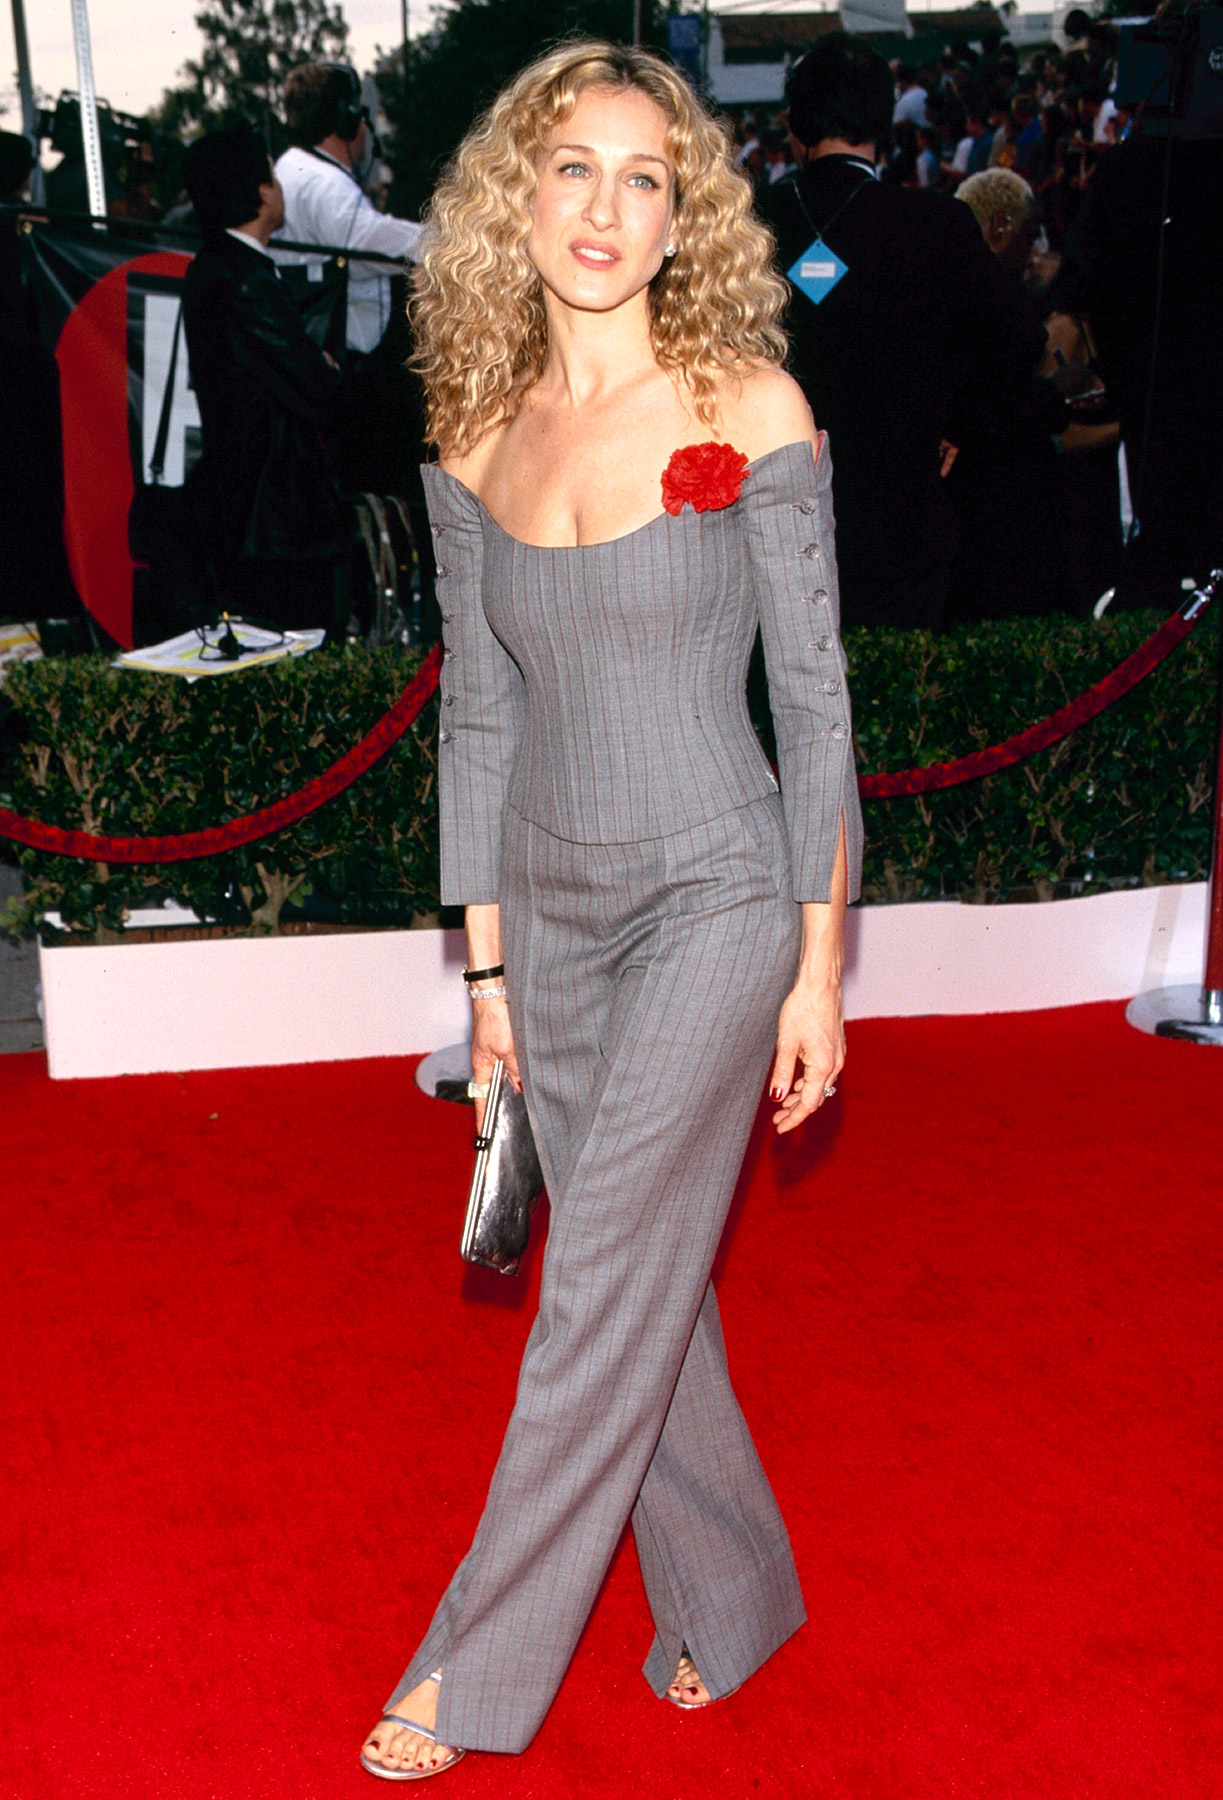 Parker revved up the menswear game in a shocking grey pinstripe Vivienne Westwood two-piece suit at the 2000 SAG Awards on March 12. With crimped hair and a bright red flower pinned to her top, she managed to create one of the carpet's biggest fashion statements.